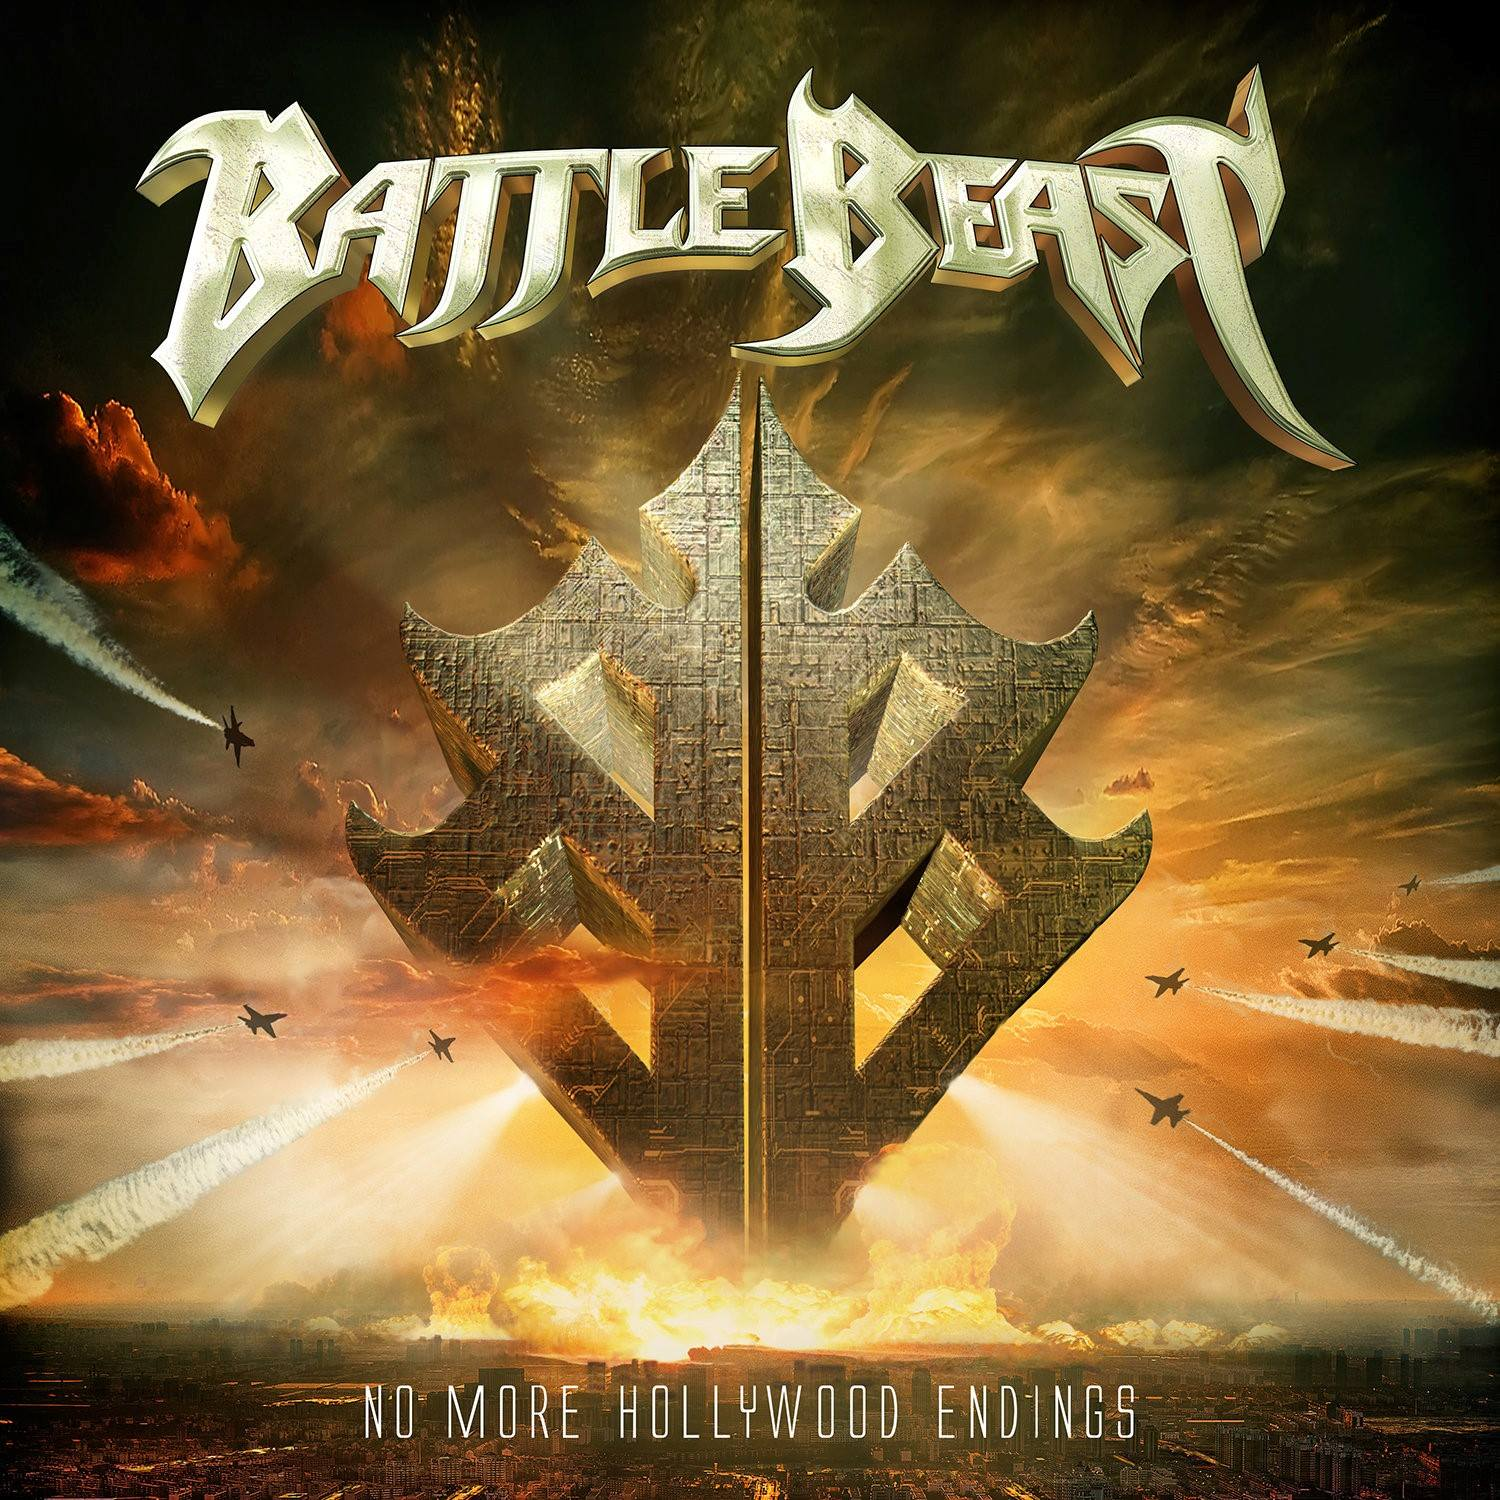 battle beast no more hollywood endings album cover